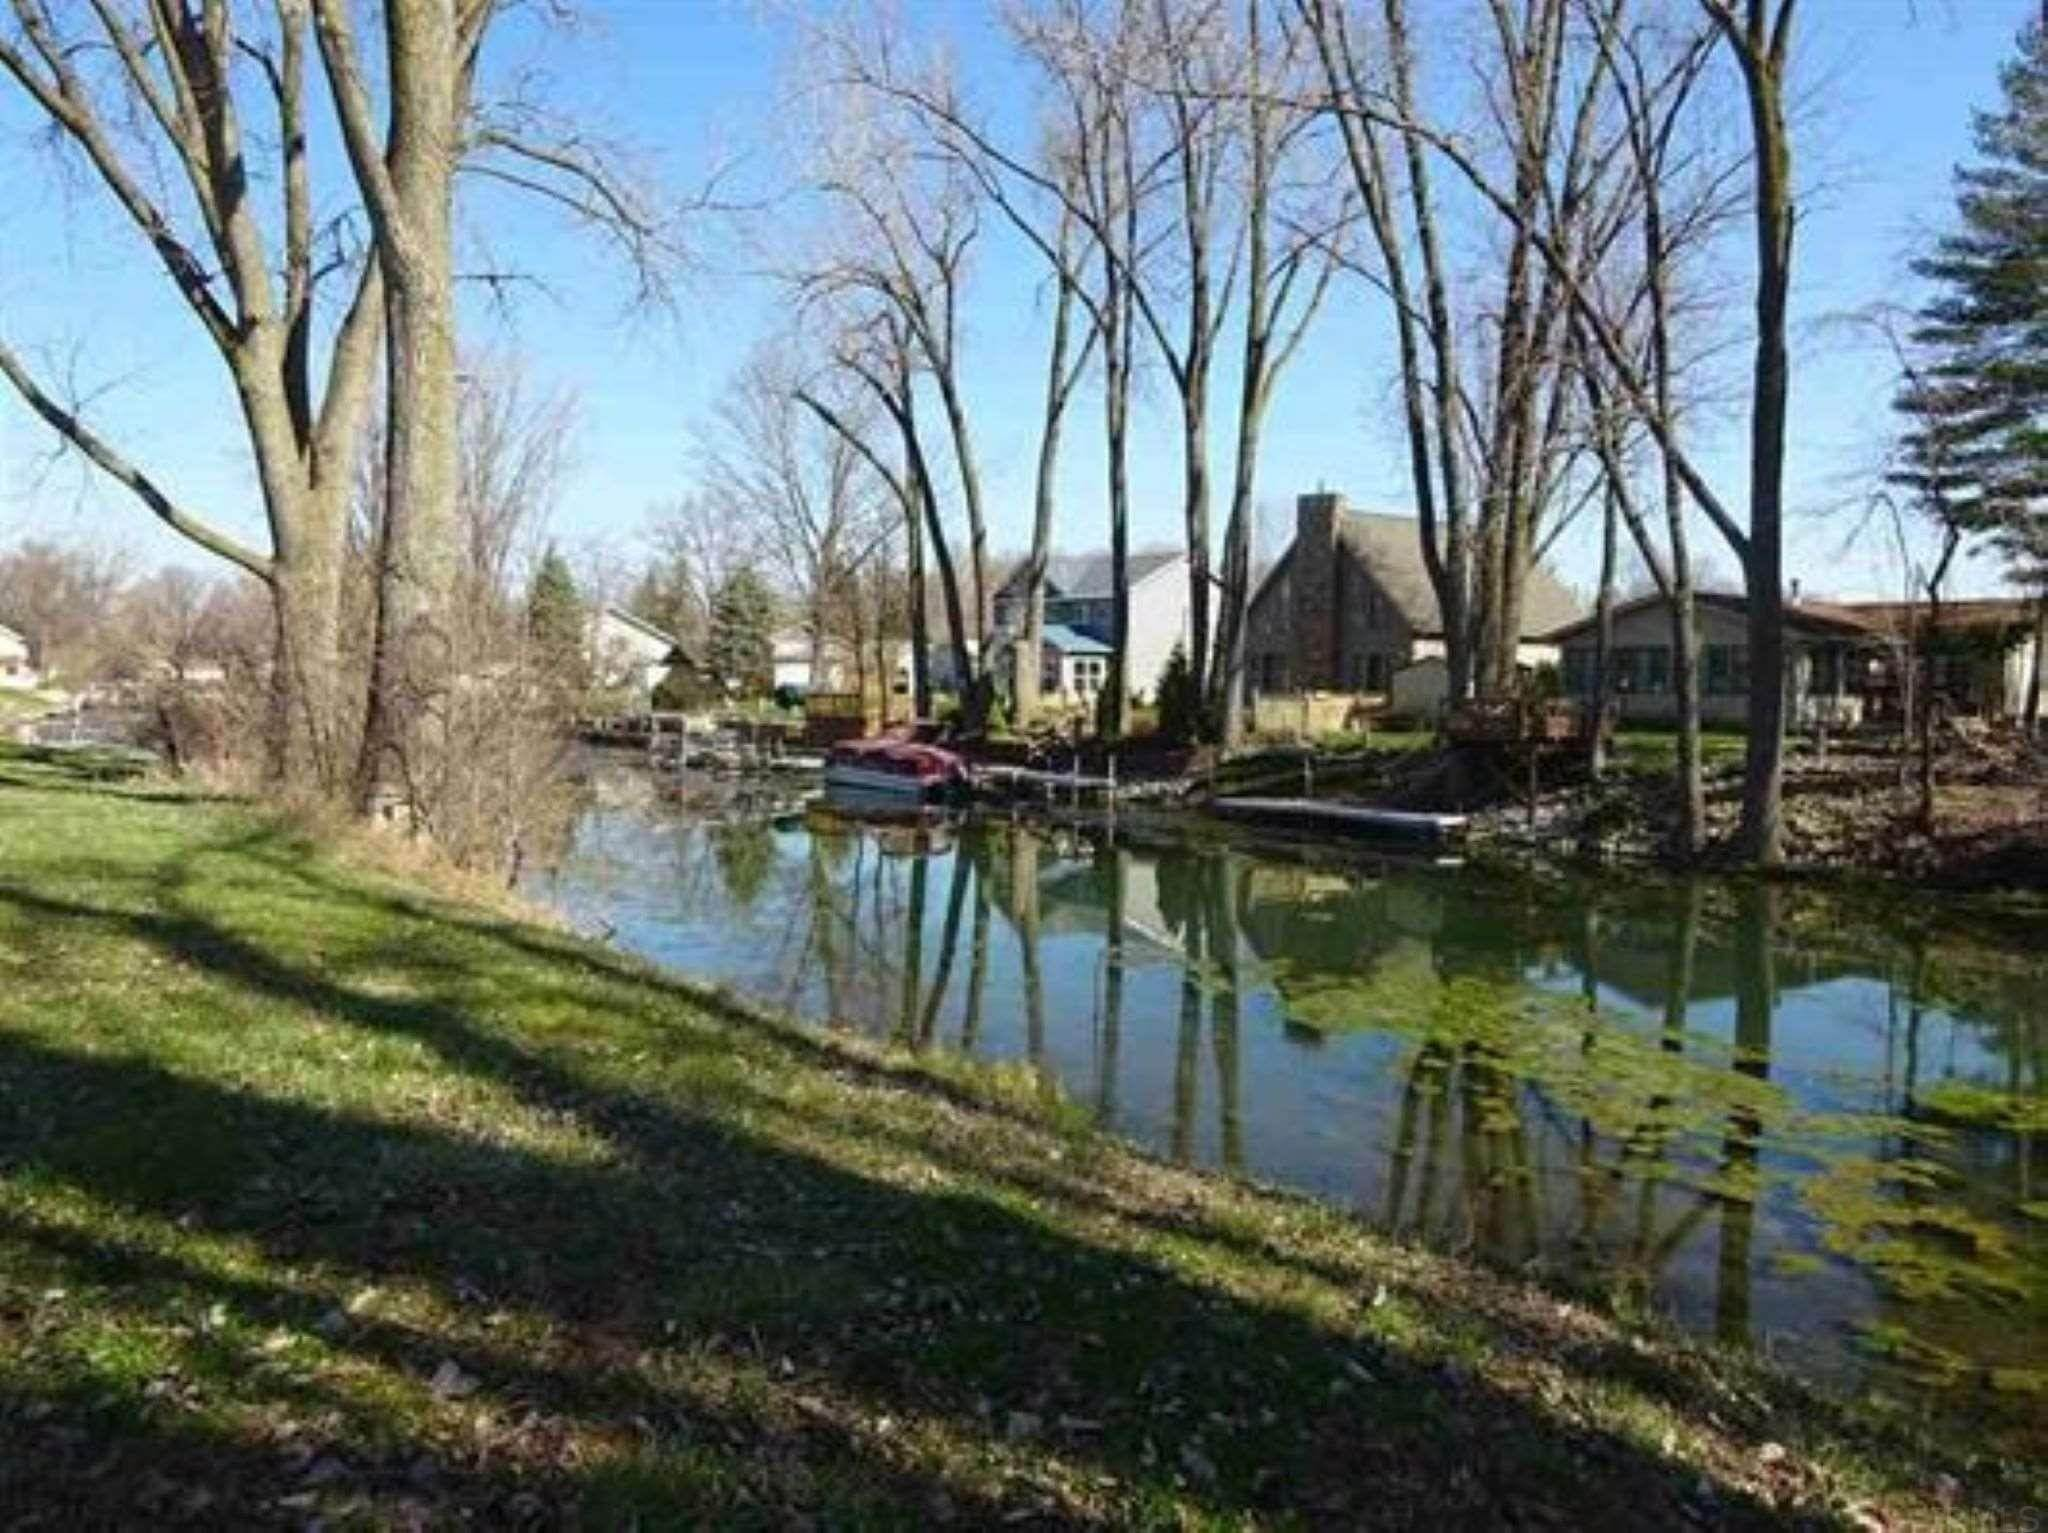 Residential Lots & Land for Sale at Lot 206 Biscayne Lane Cromwell, Indiana 46732 United States